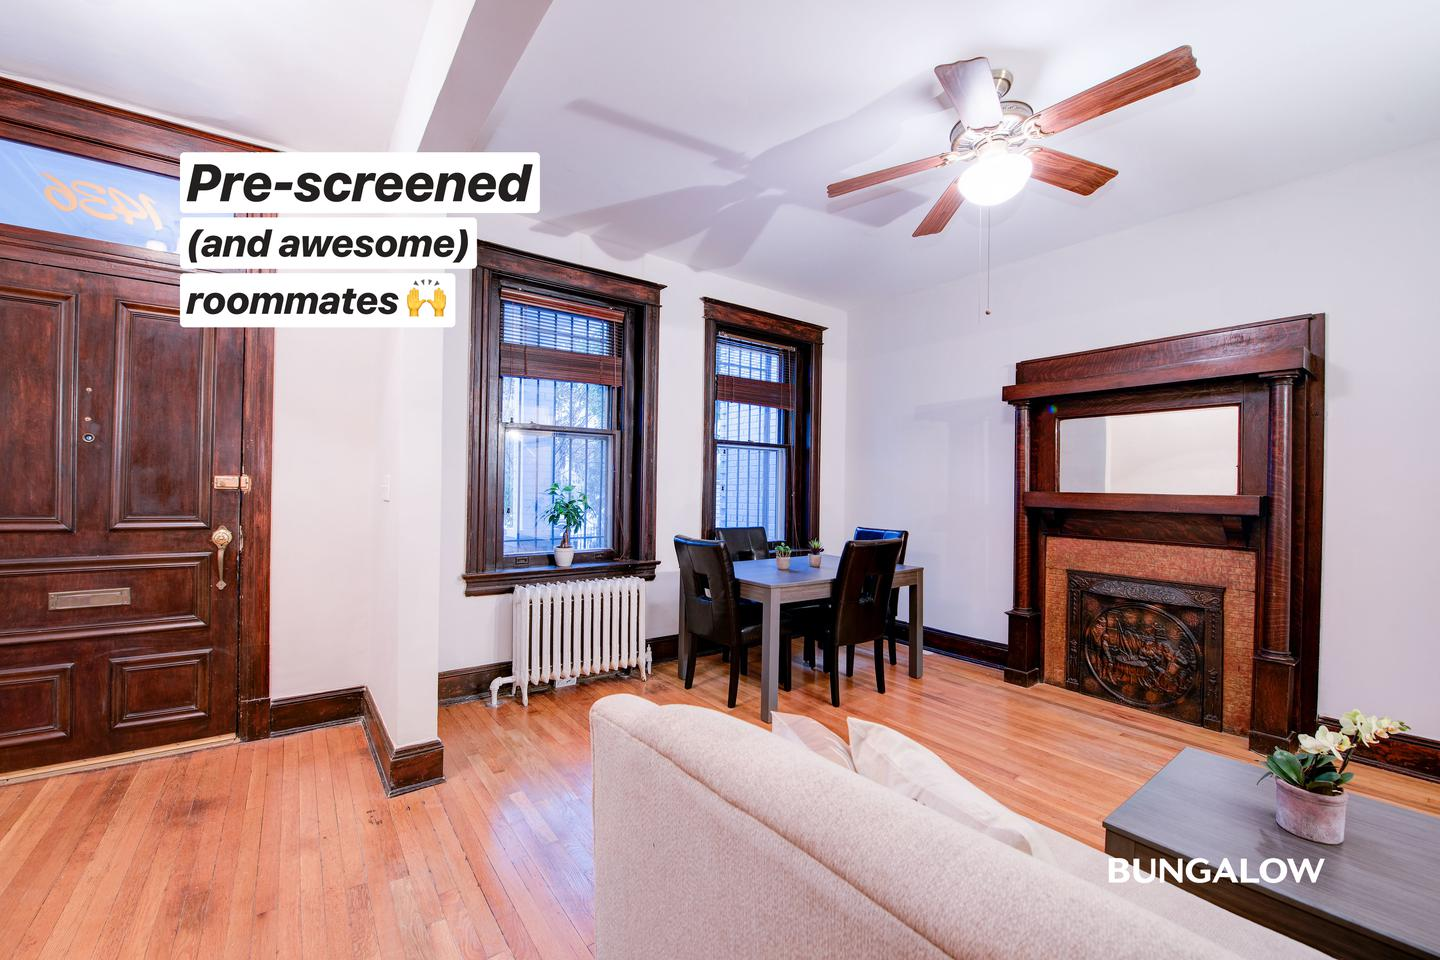 Live at Private Bedroom in Stylish Columbia Heights Townhome With Brick Patio